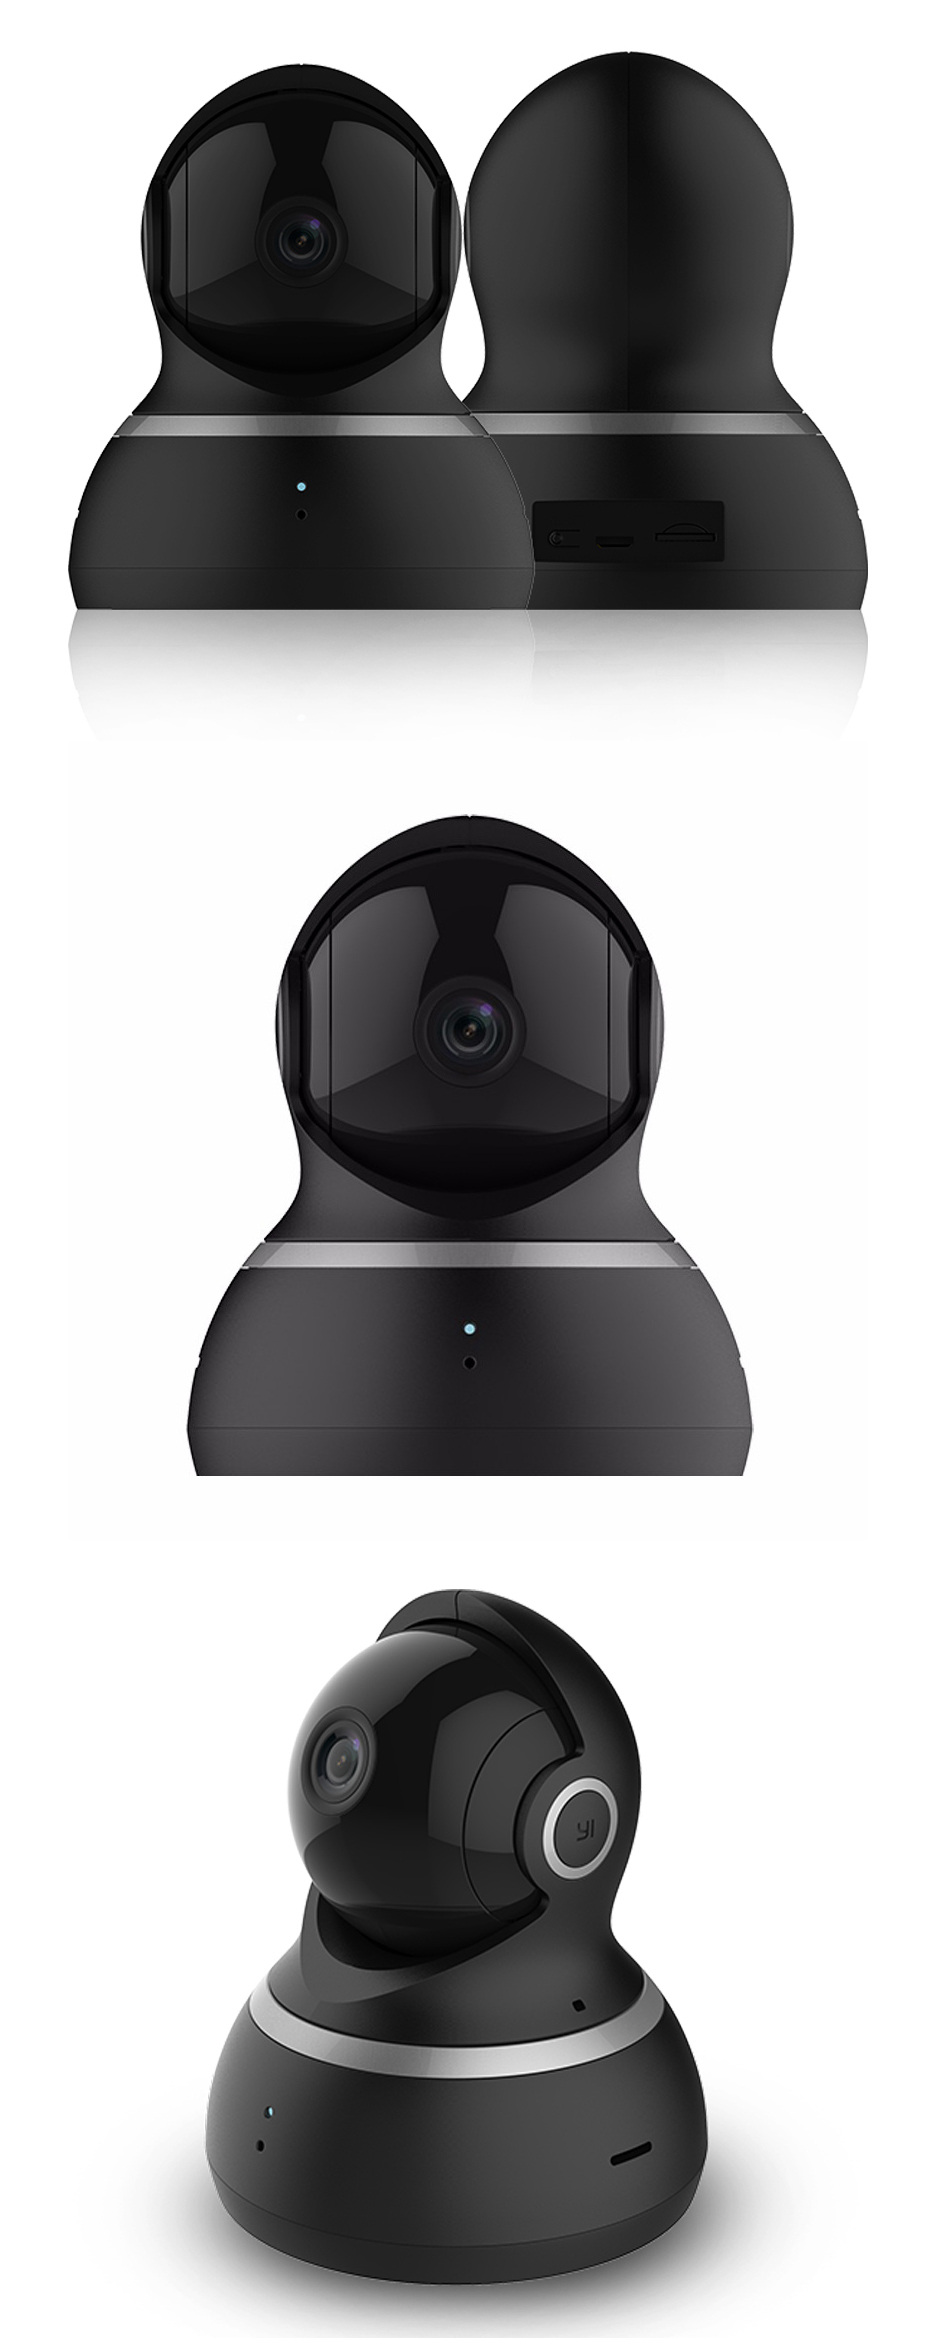 Xiaoyi 1080P Dome Camera Wireless IP Camera Pan-Tilt Control Infrared Night Vision Motion-Detection Home Wifi Camera Baby Monitors - Black